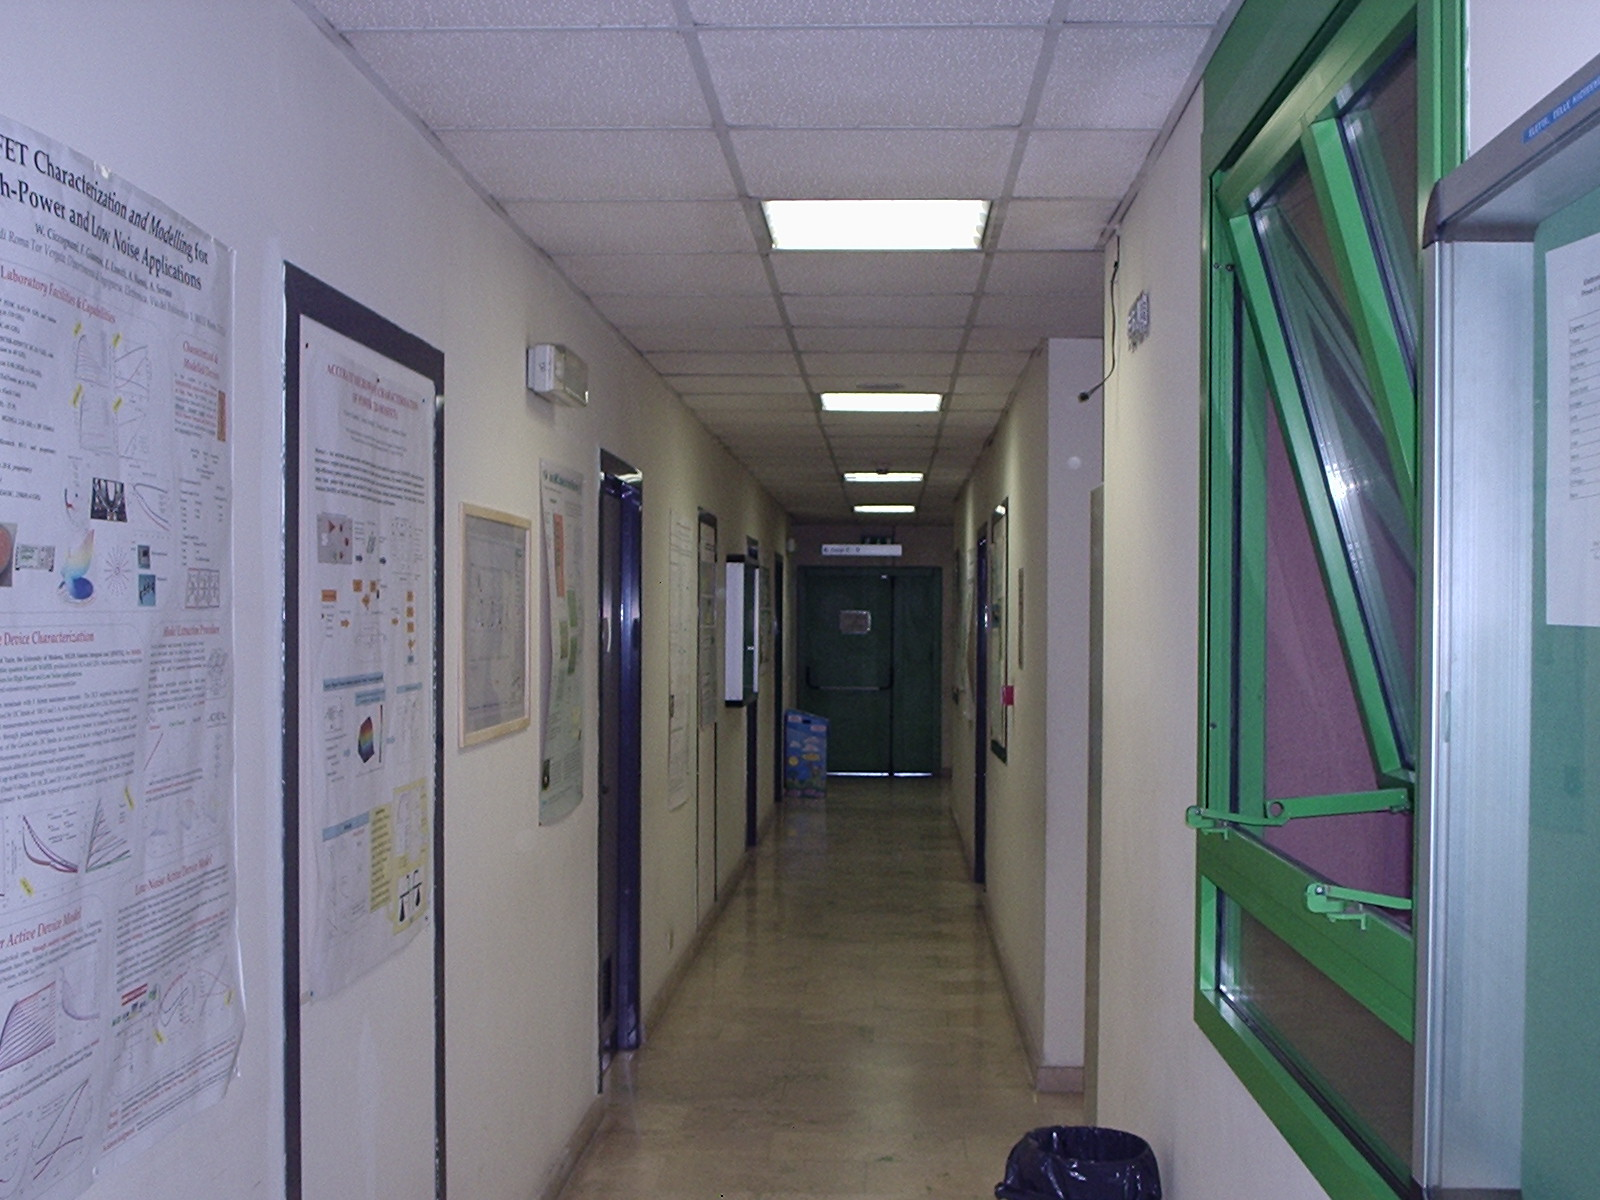 disp, first floor, corridor